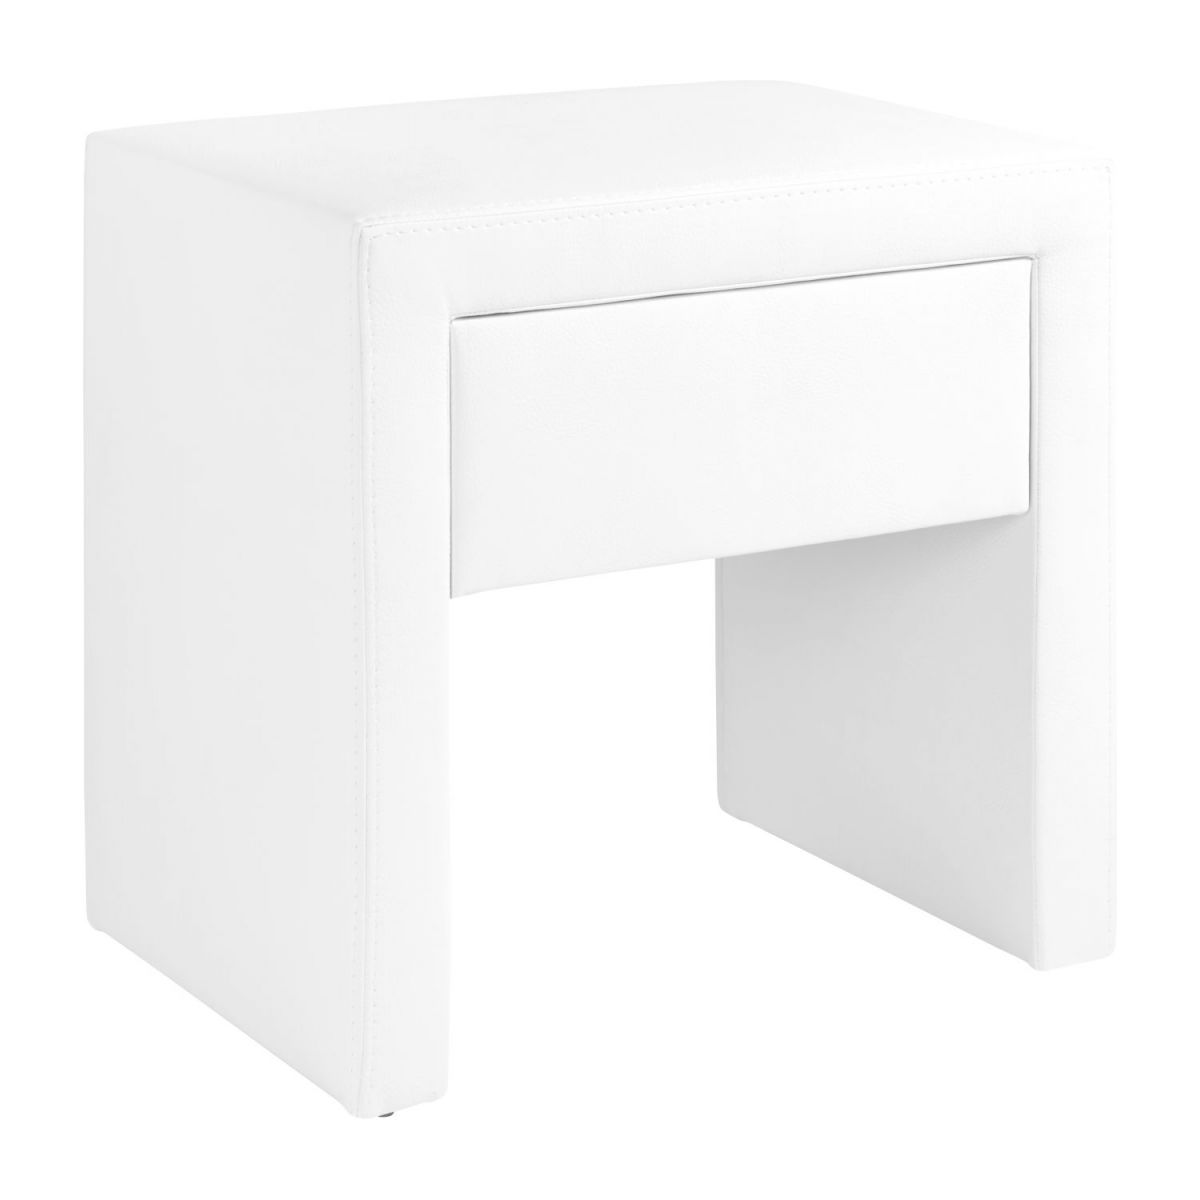 Table de chevet - Blanc n°1